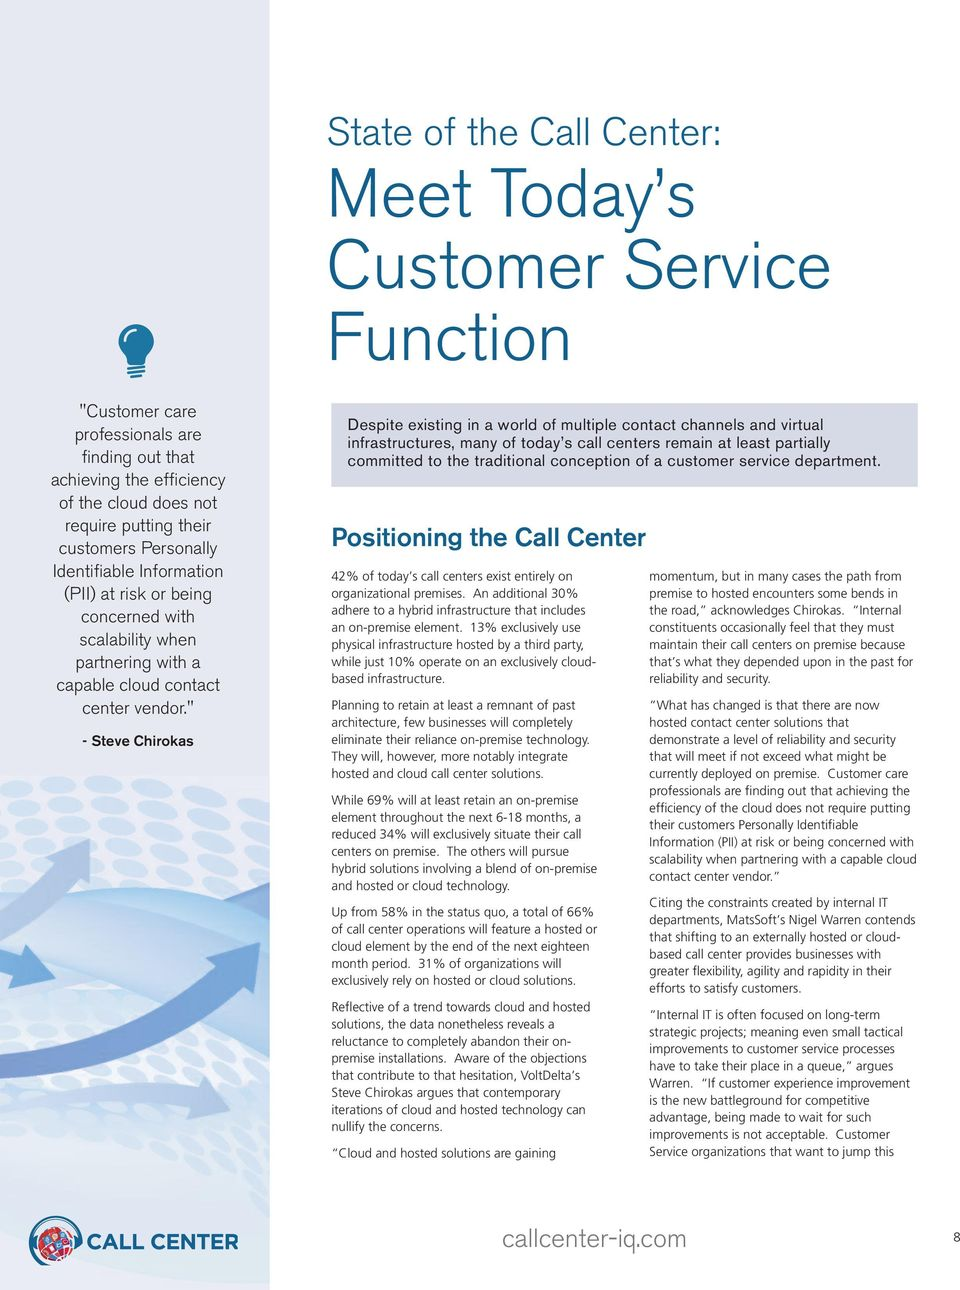 """ - Steve Chirokas Despite existing in a world of multiple contact channels and virtual infrastructures, many of today s call centers remain at least partially committed to the traditional conception"